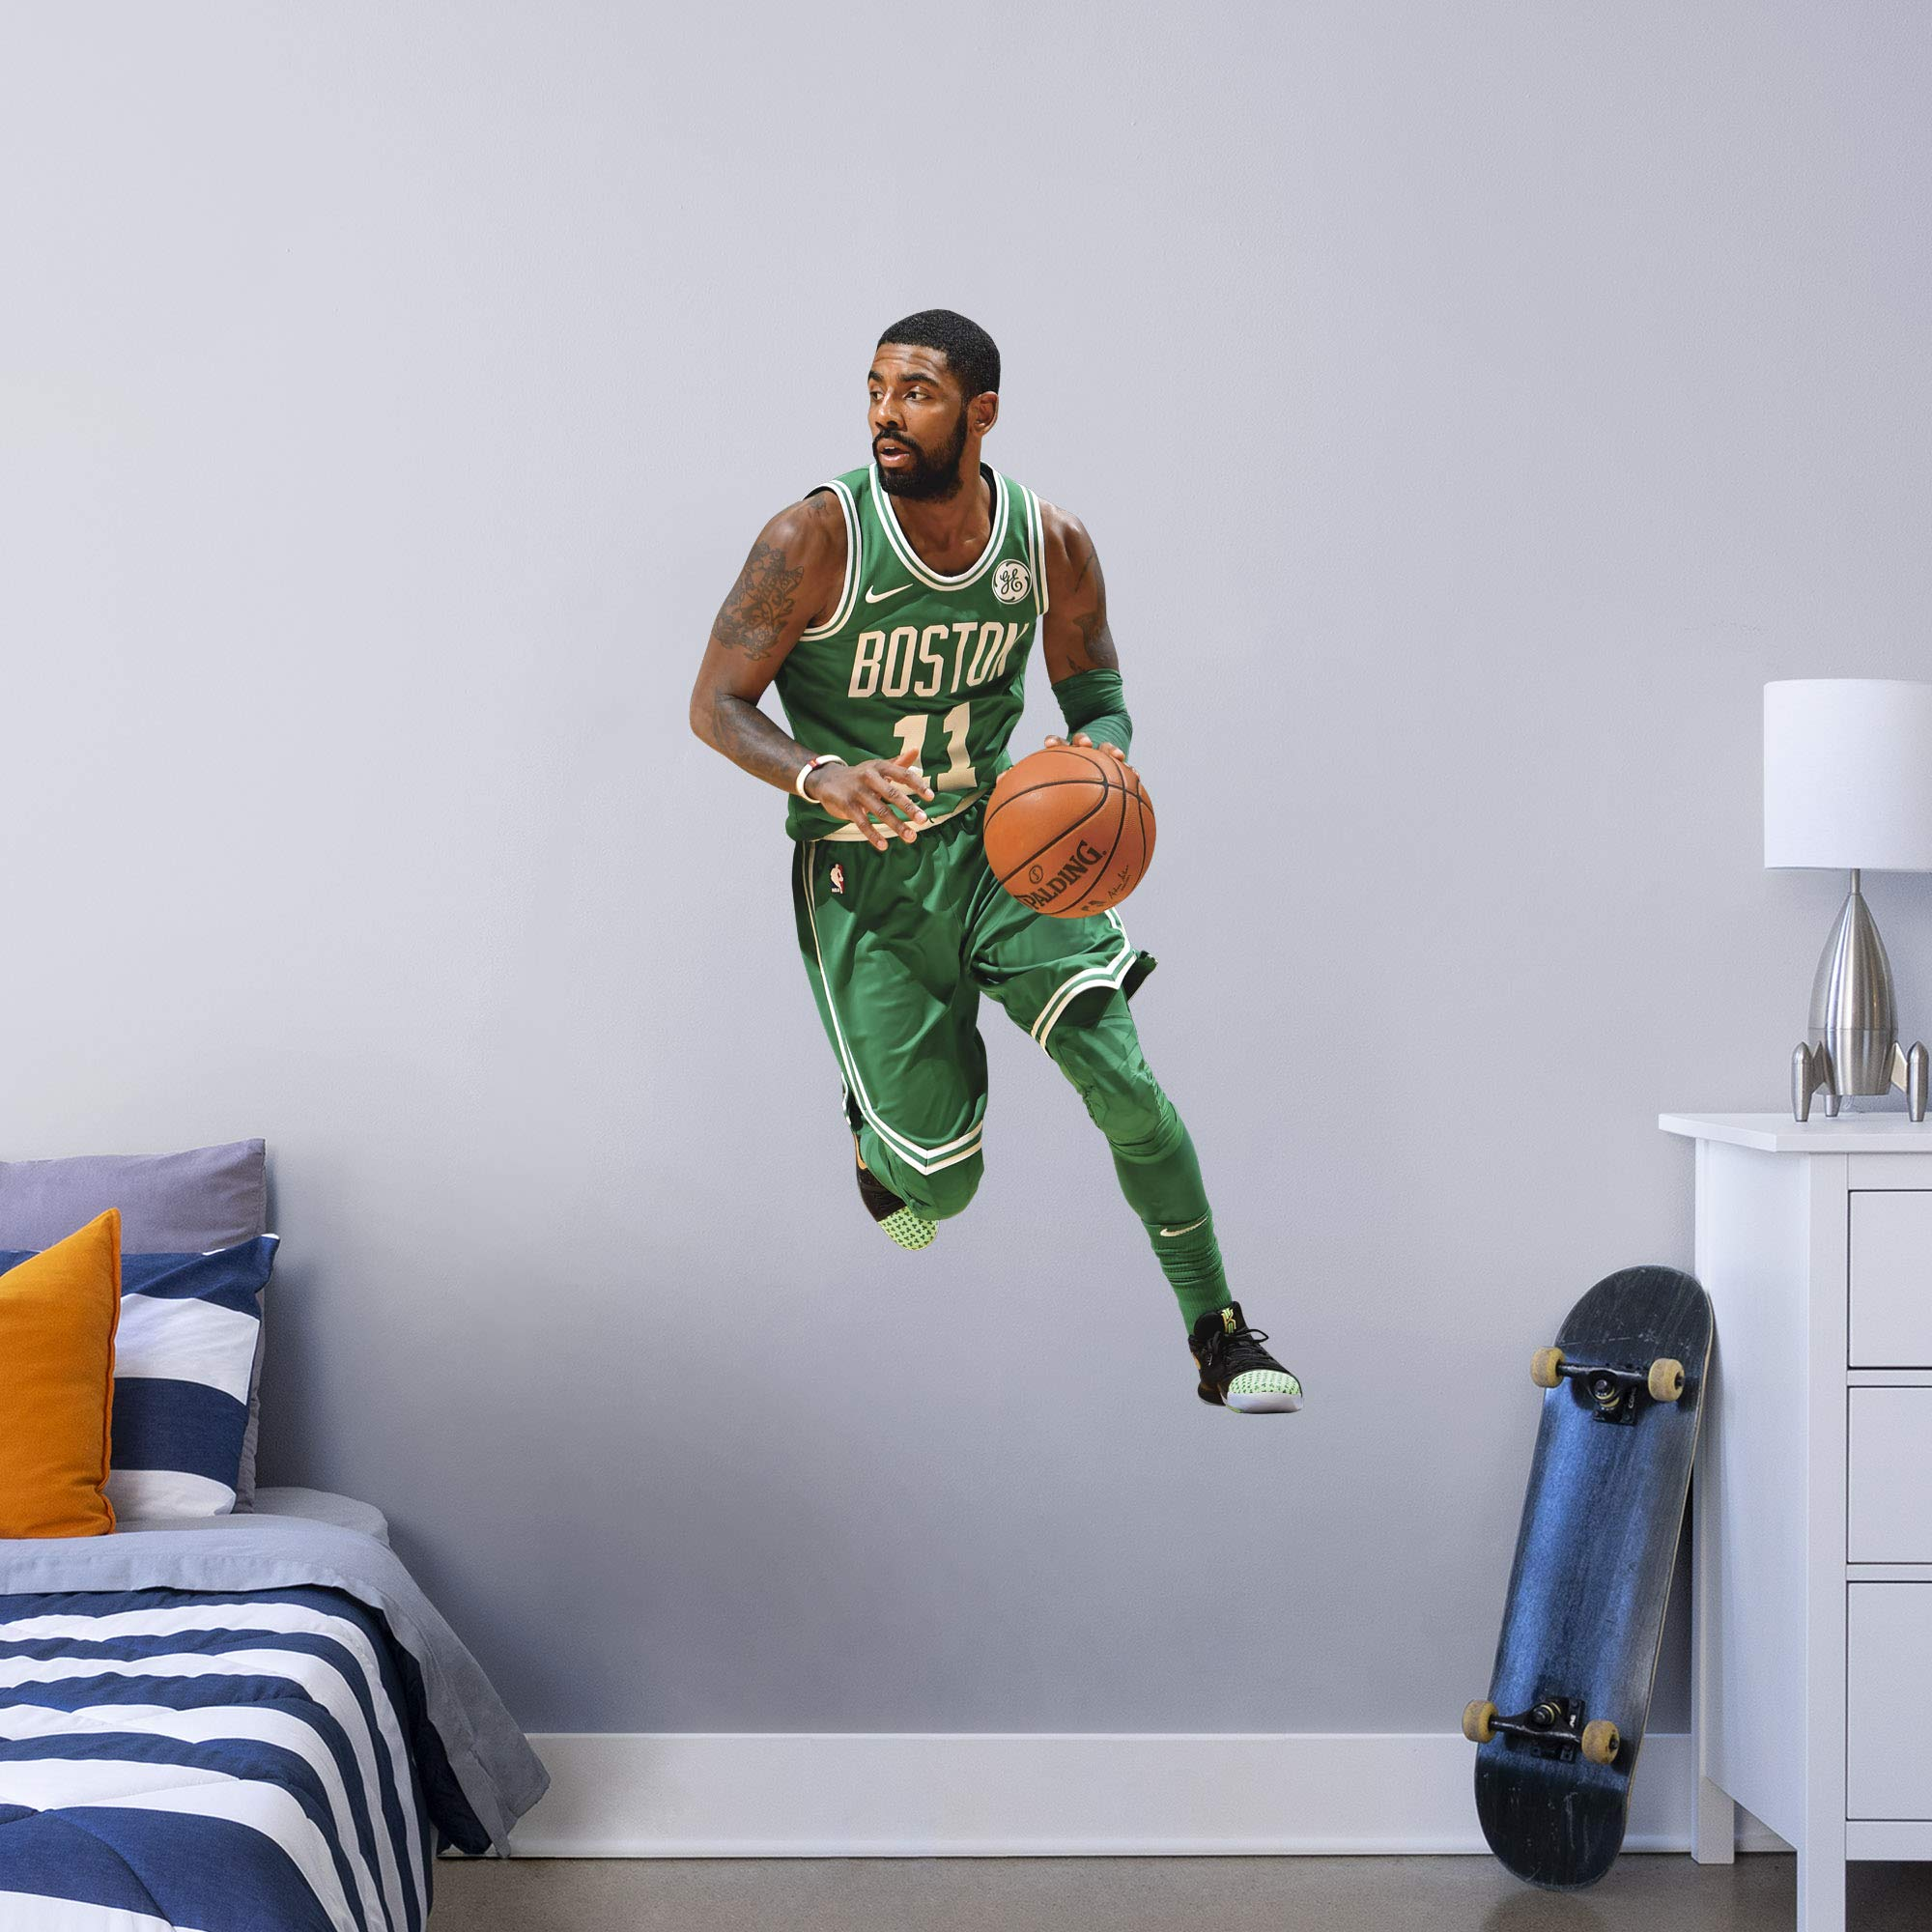 Fathead NBA Boston Celtics Kyrie Irving Kyrie Irving- Officially Licensed Removable Wall Decal, Multicolor, Giant - 1900-00305-003 by FATHEAD